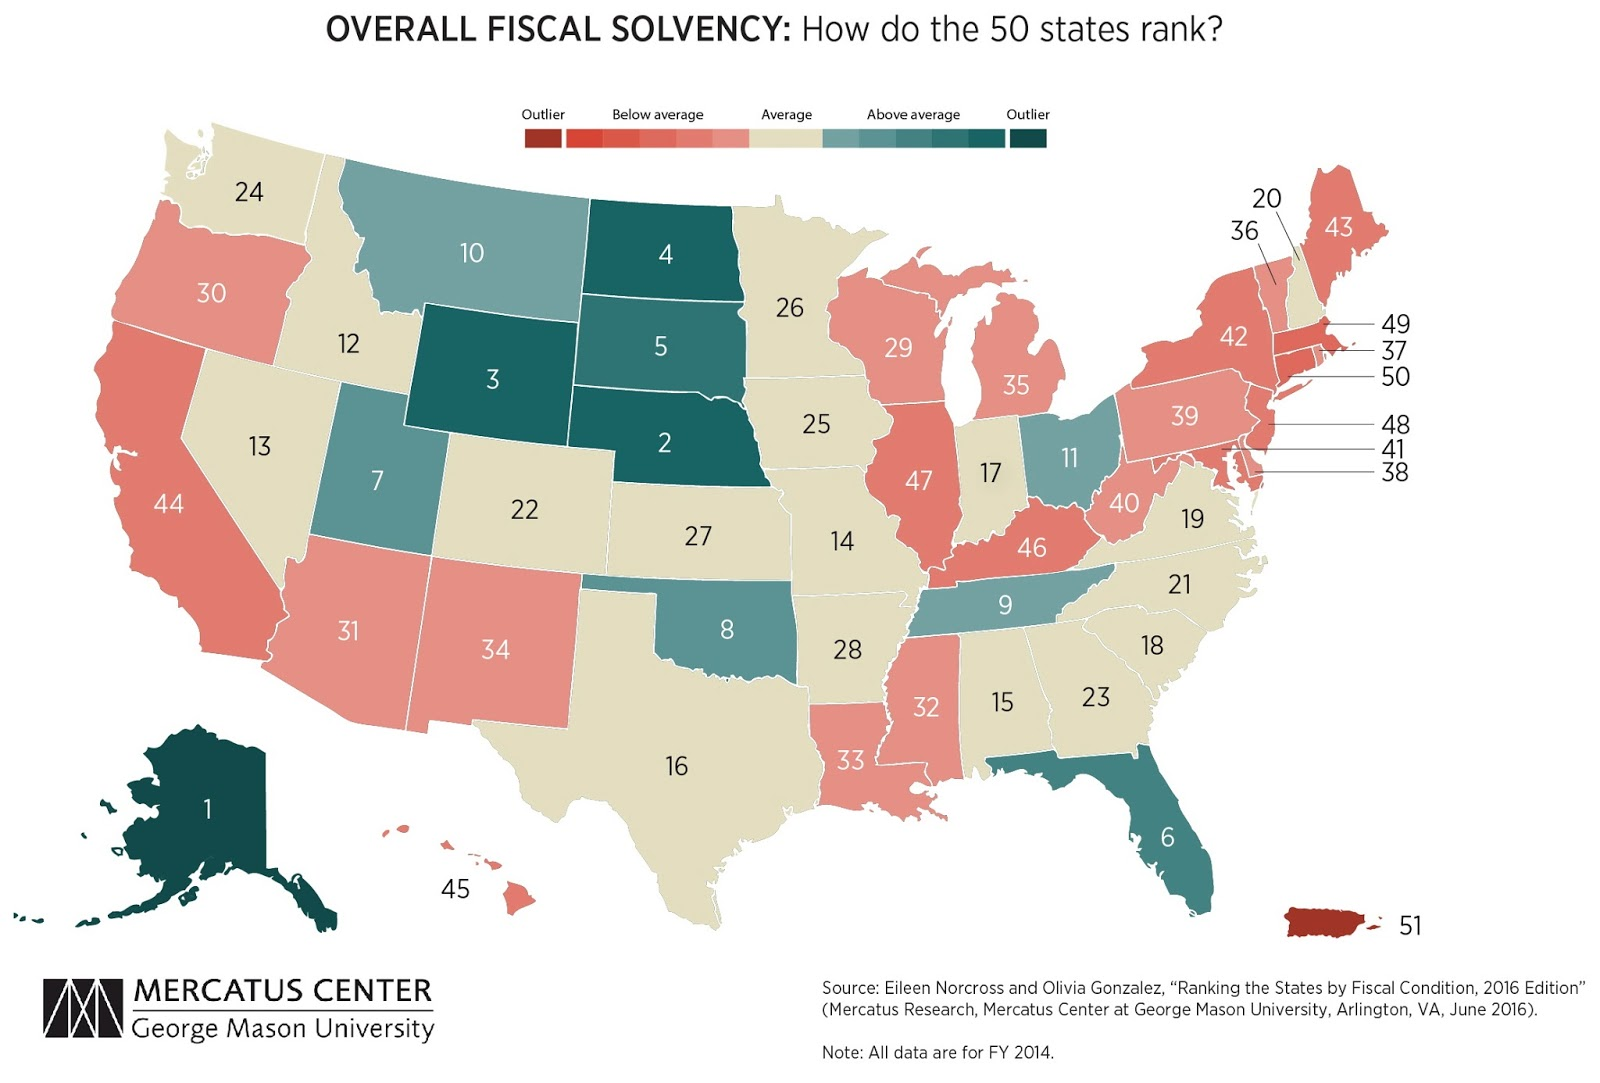 Overal fiscal solvency: How do the 50 states rank?